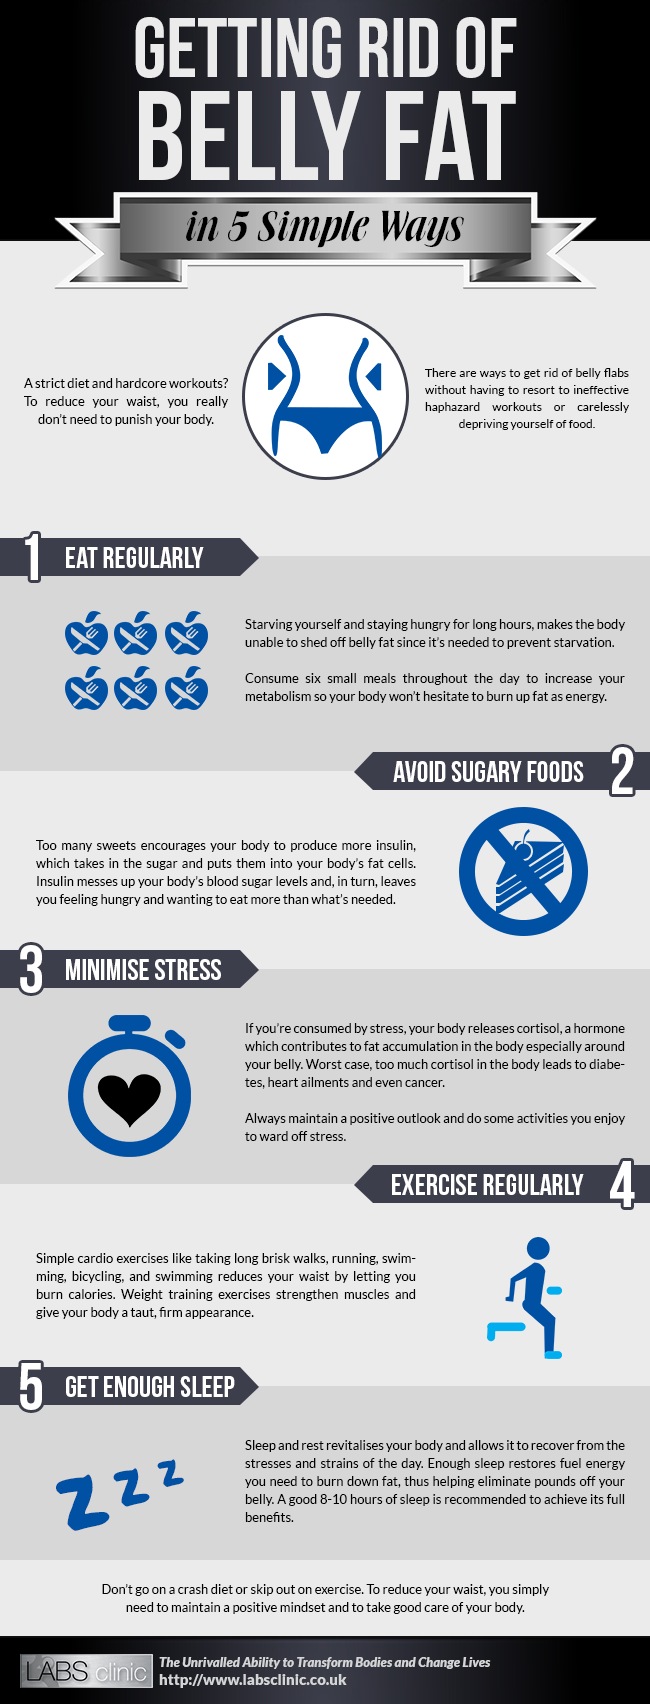 labsclinic-infographic-5-simple-ways-to-get-rid-of-belly-fat